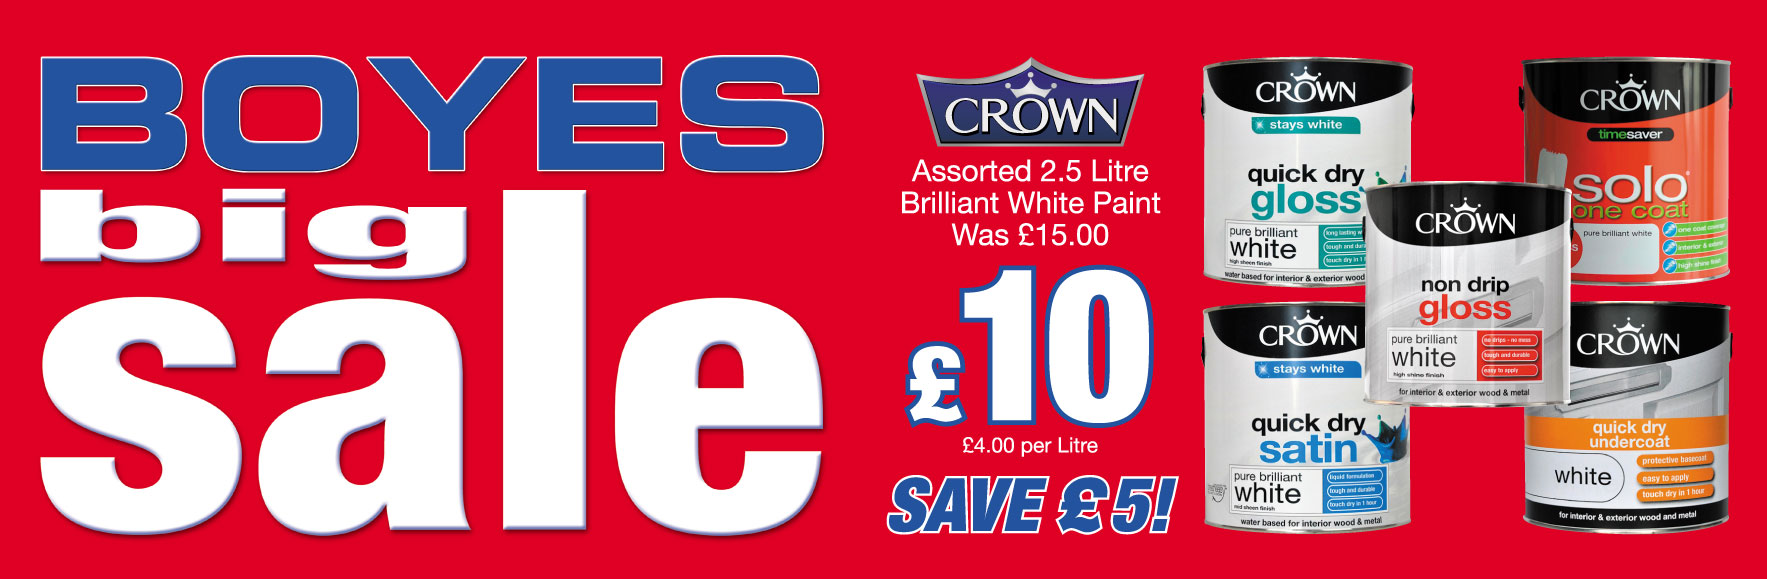 Crown Assorted Brilliant White Paint Was £15 NOW £10